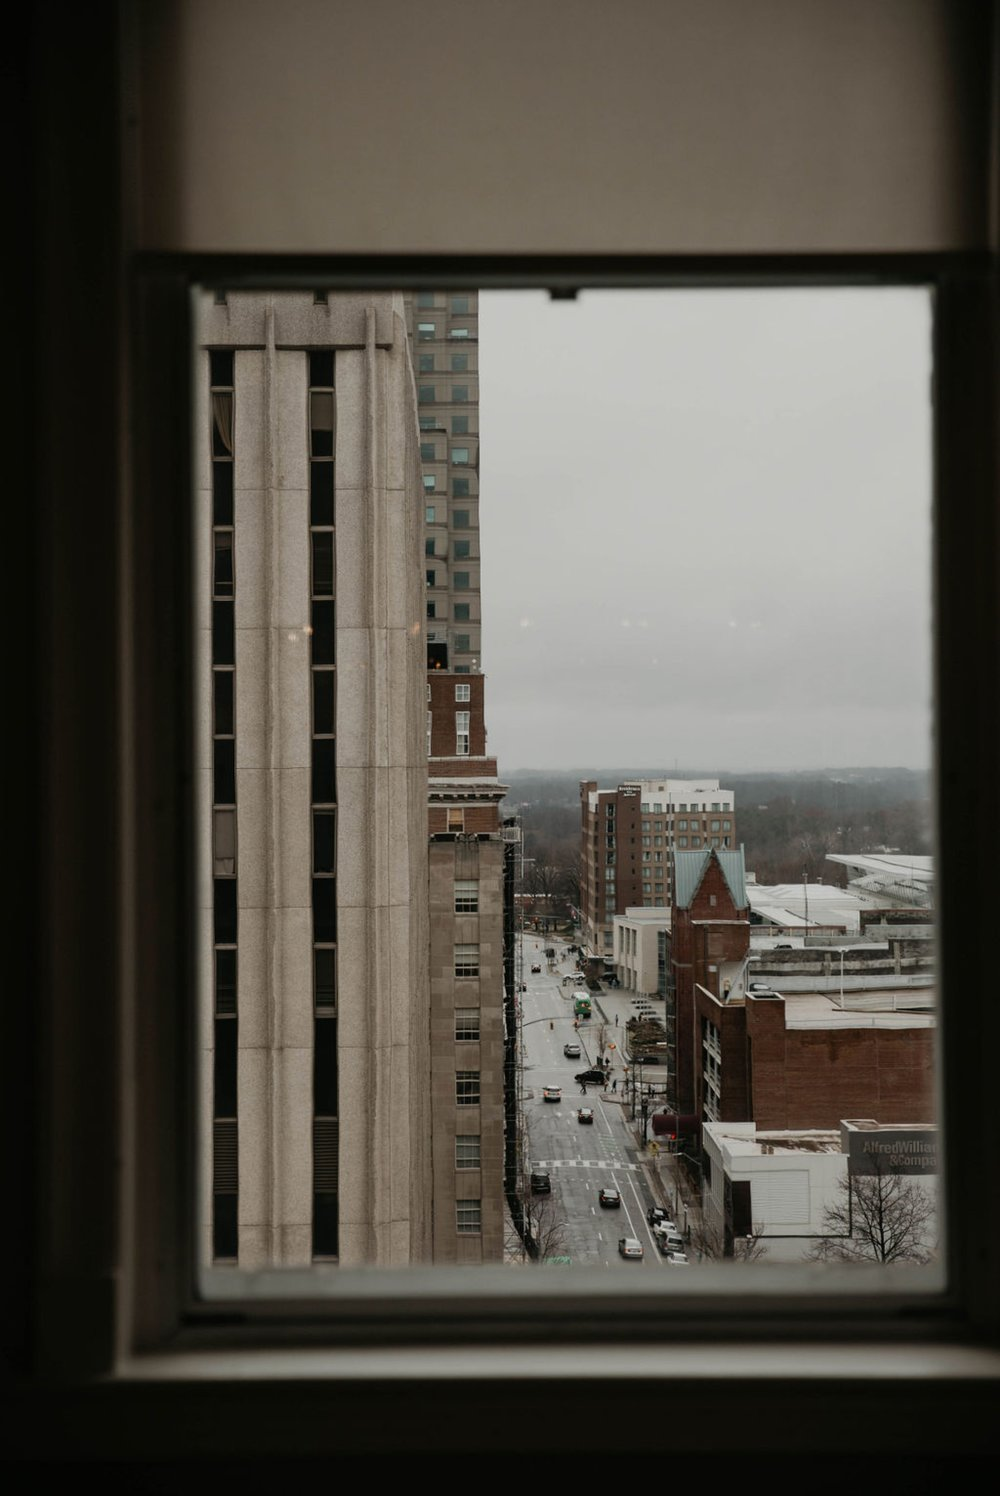 Looking out the window of the cannon room - - Bride in an Allure Bridals Mermaid Gown - Matt Smarsh and Johanna Dye - suites by the black tux - Raleigh North Carolina Urban Edgy Downtown Wedding - suits by the black tux